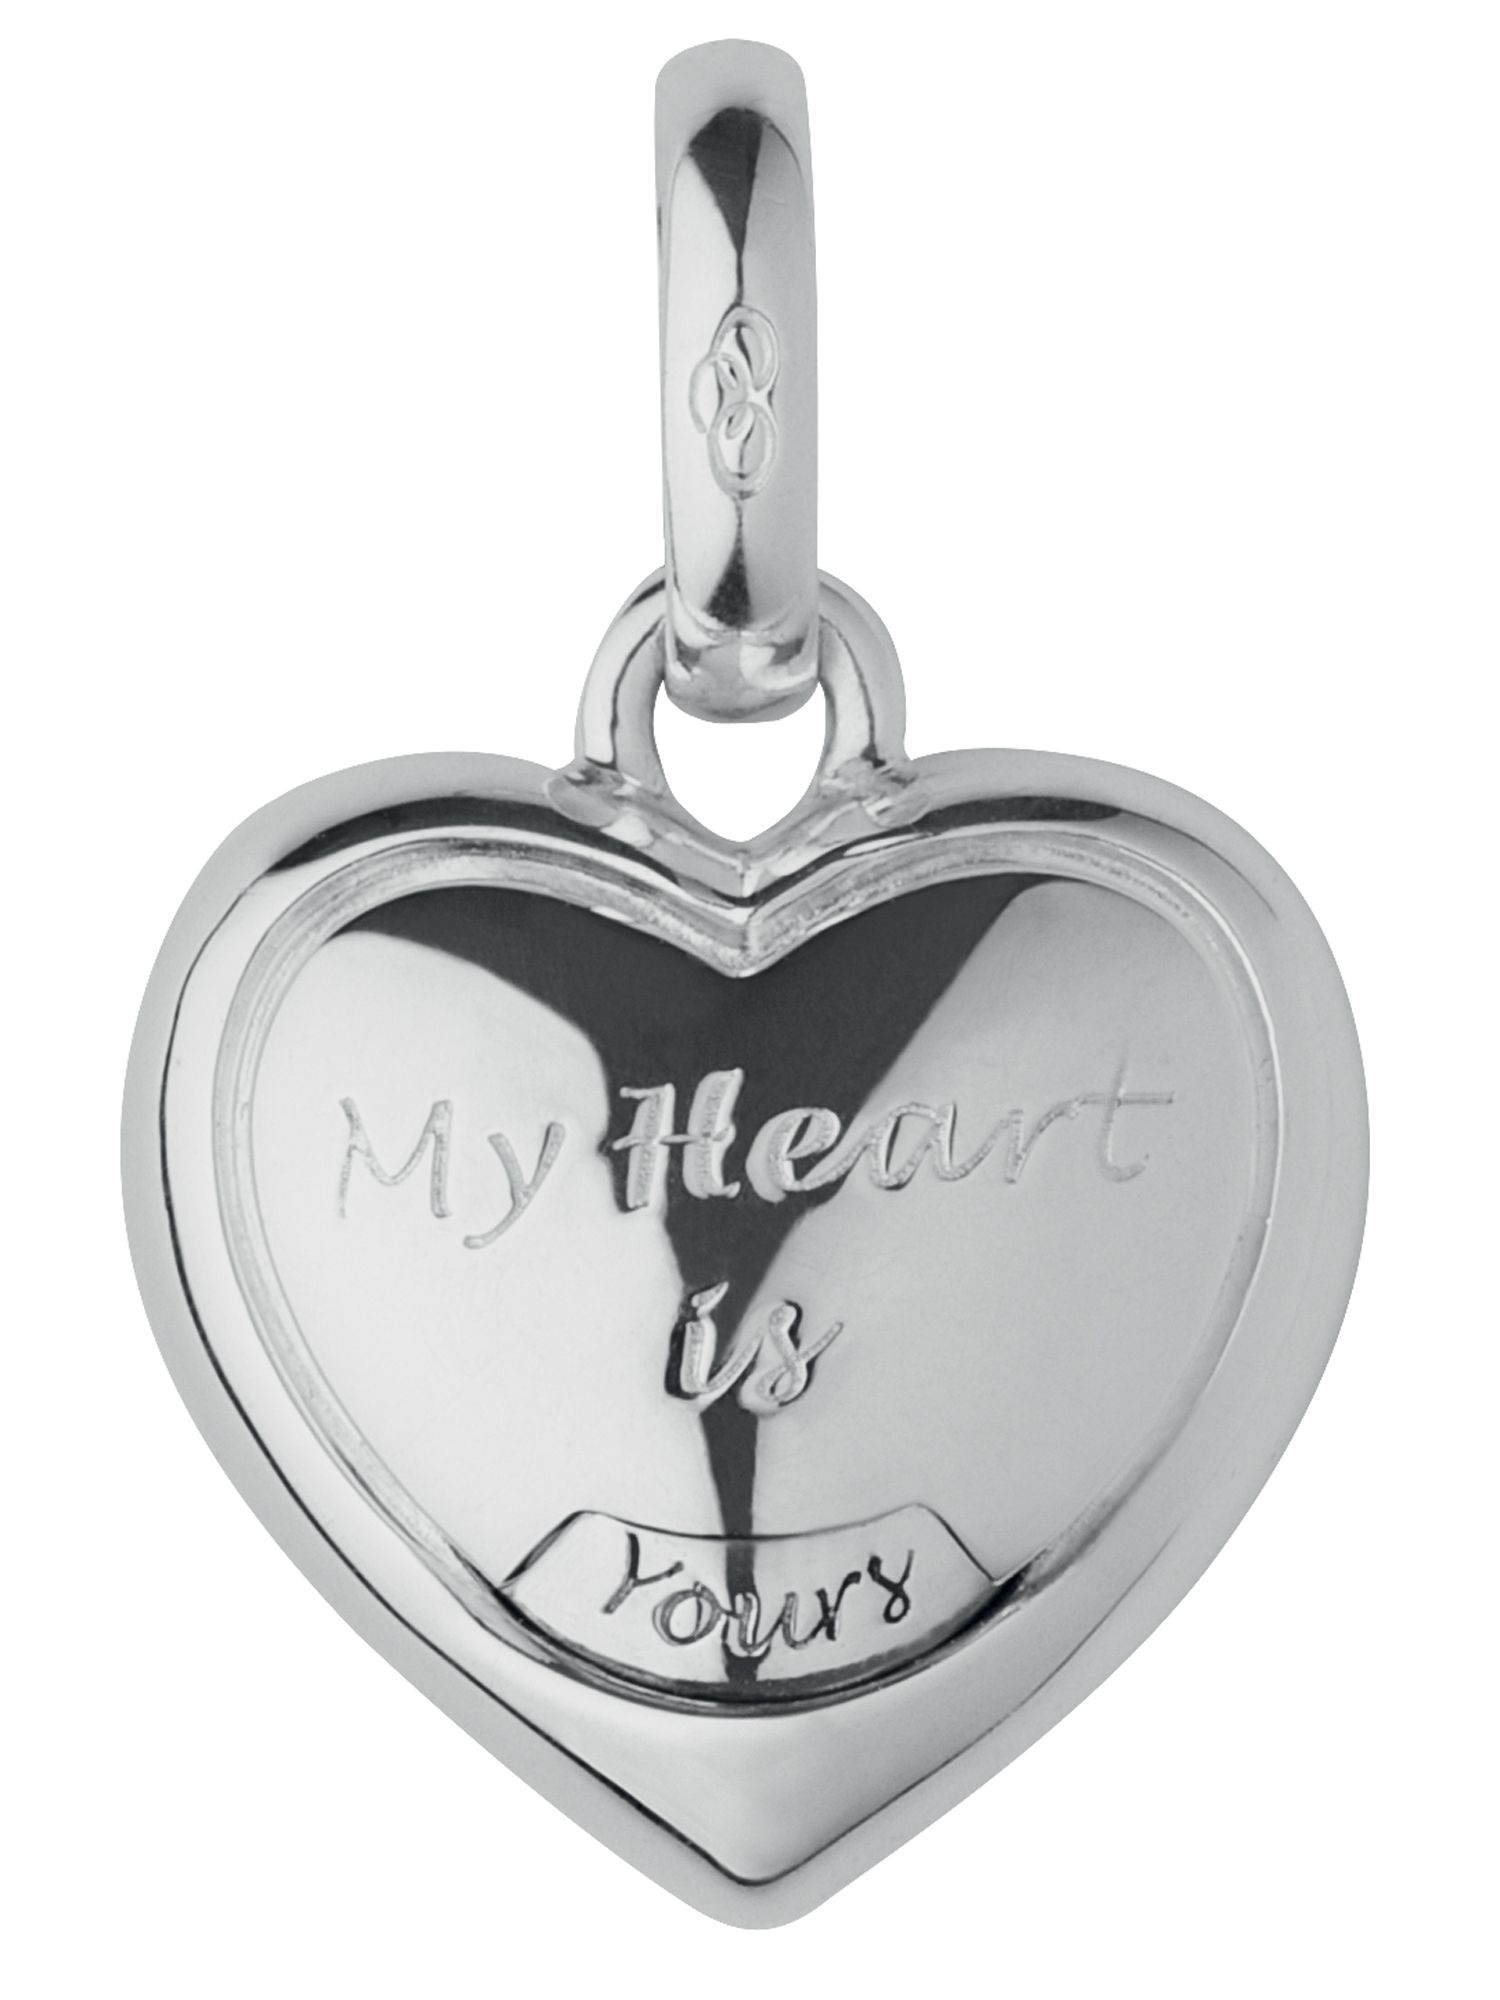 Decisions of the heart charm